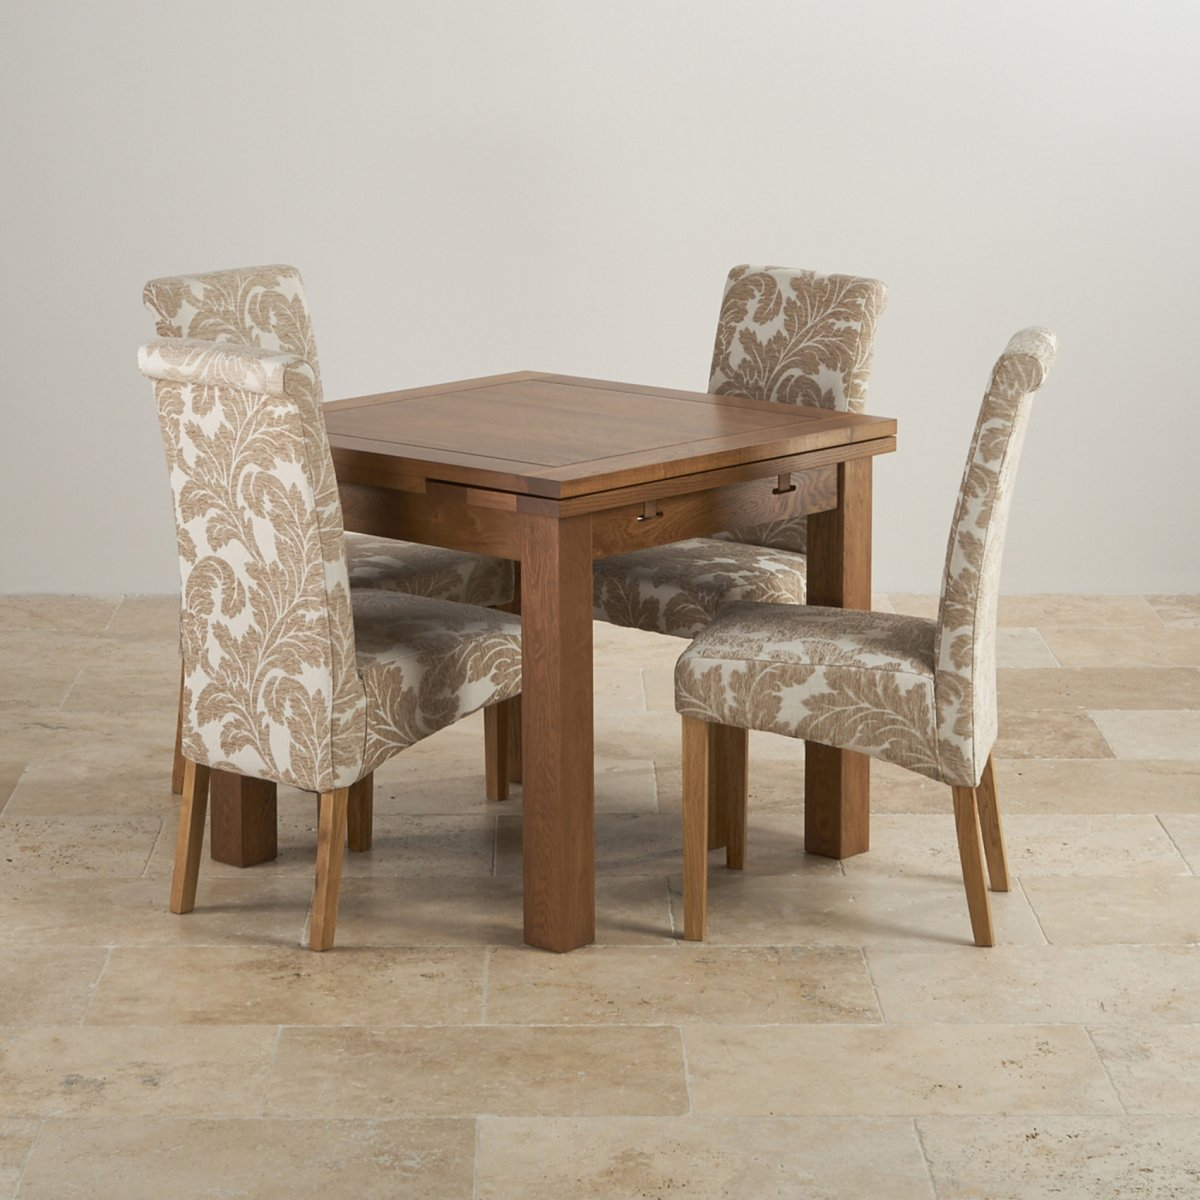 3ft Table With 4 Beige Chairs: Rustic Dining Set In Oak: Extending Dining Table + 4 Chairs